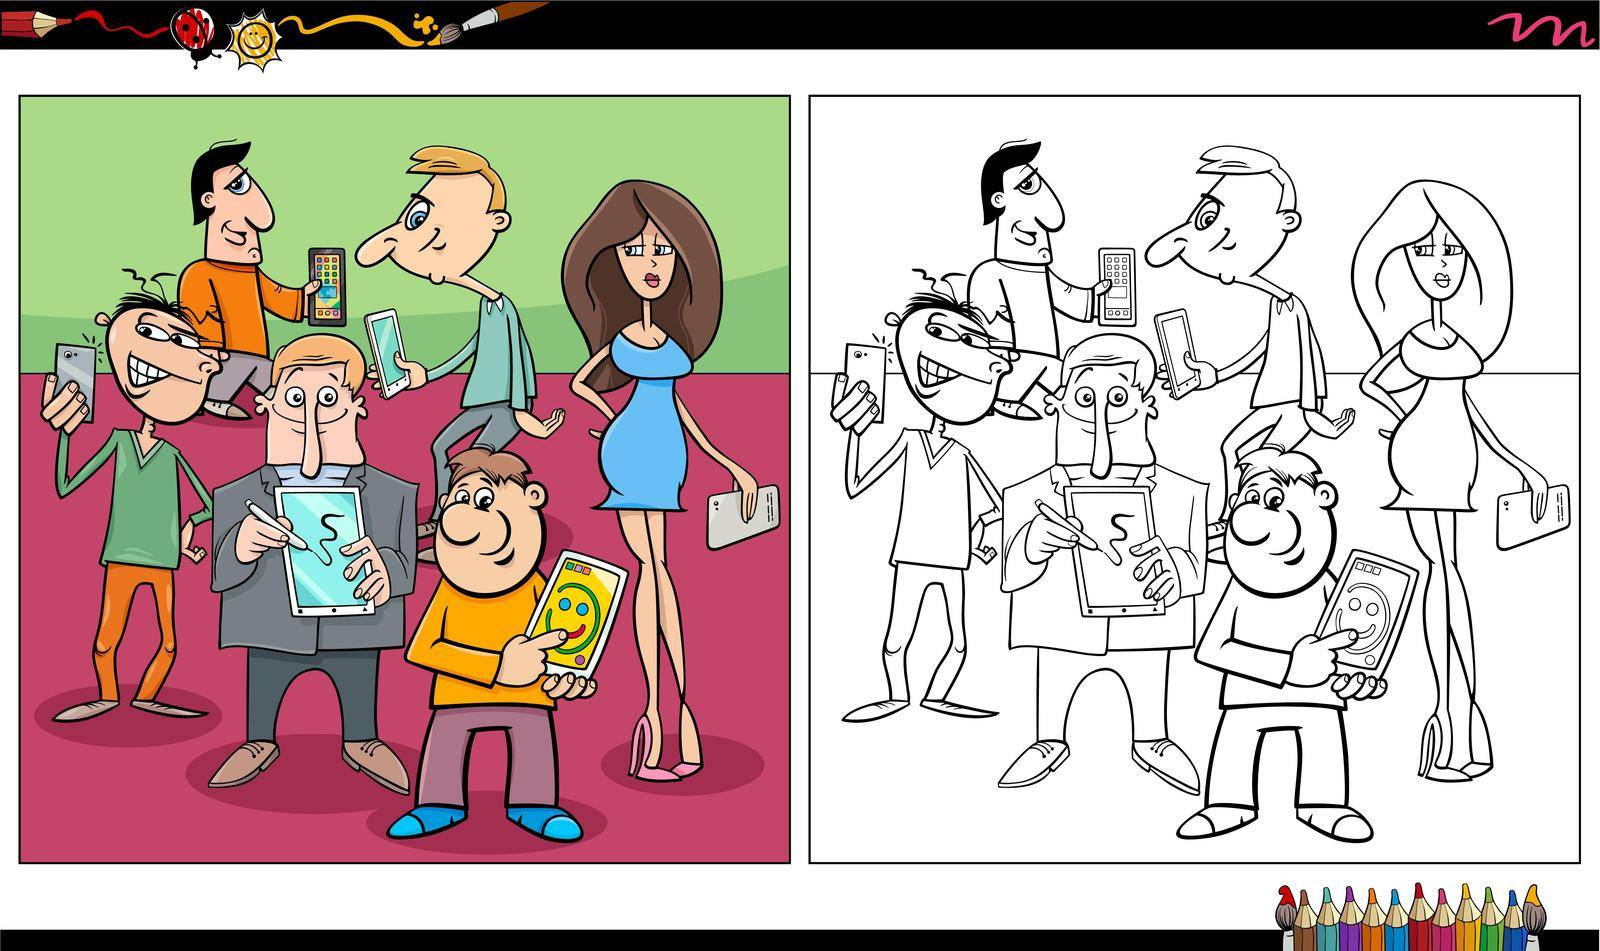 Cartoon illustration of people with smart phones and tablets talking or taking photos comic characters group coloring book page